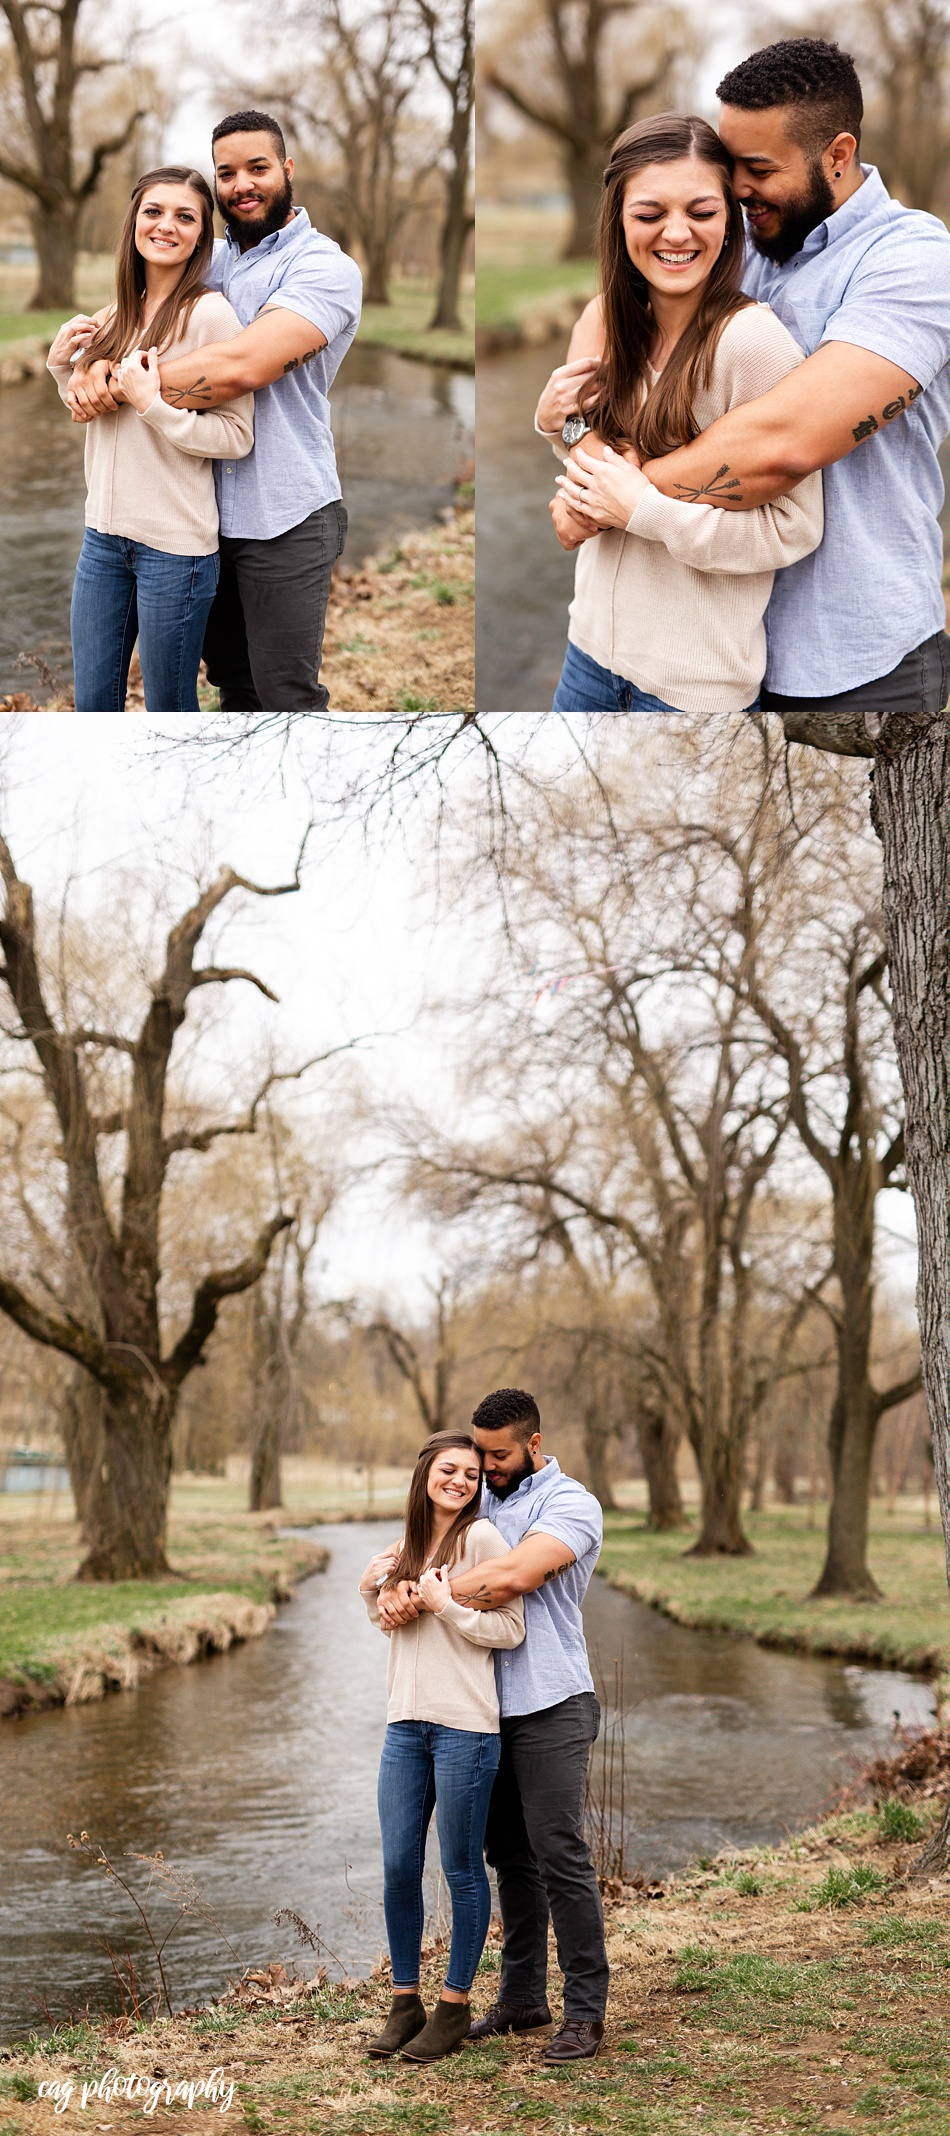 Sarah+Talon ENGAGED-21.jpg